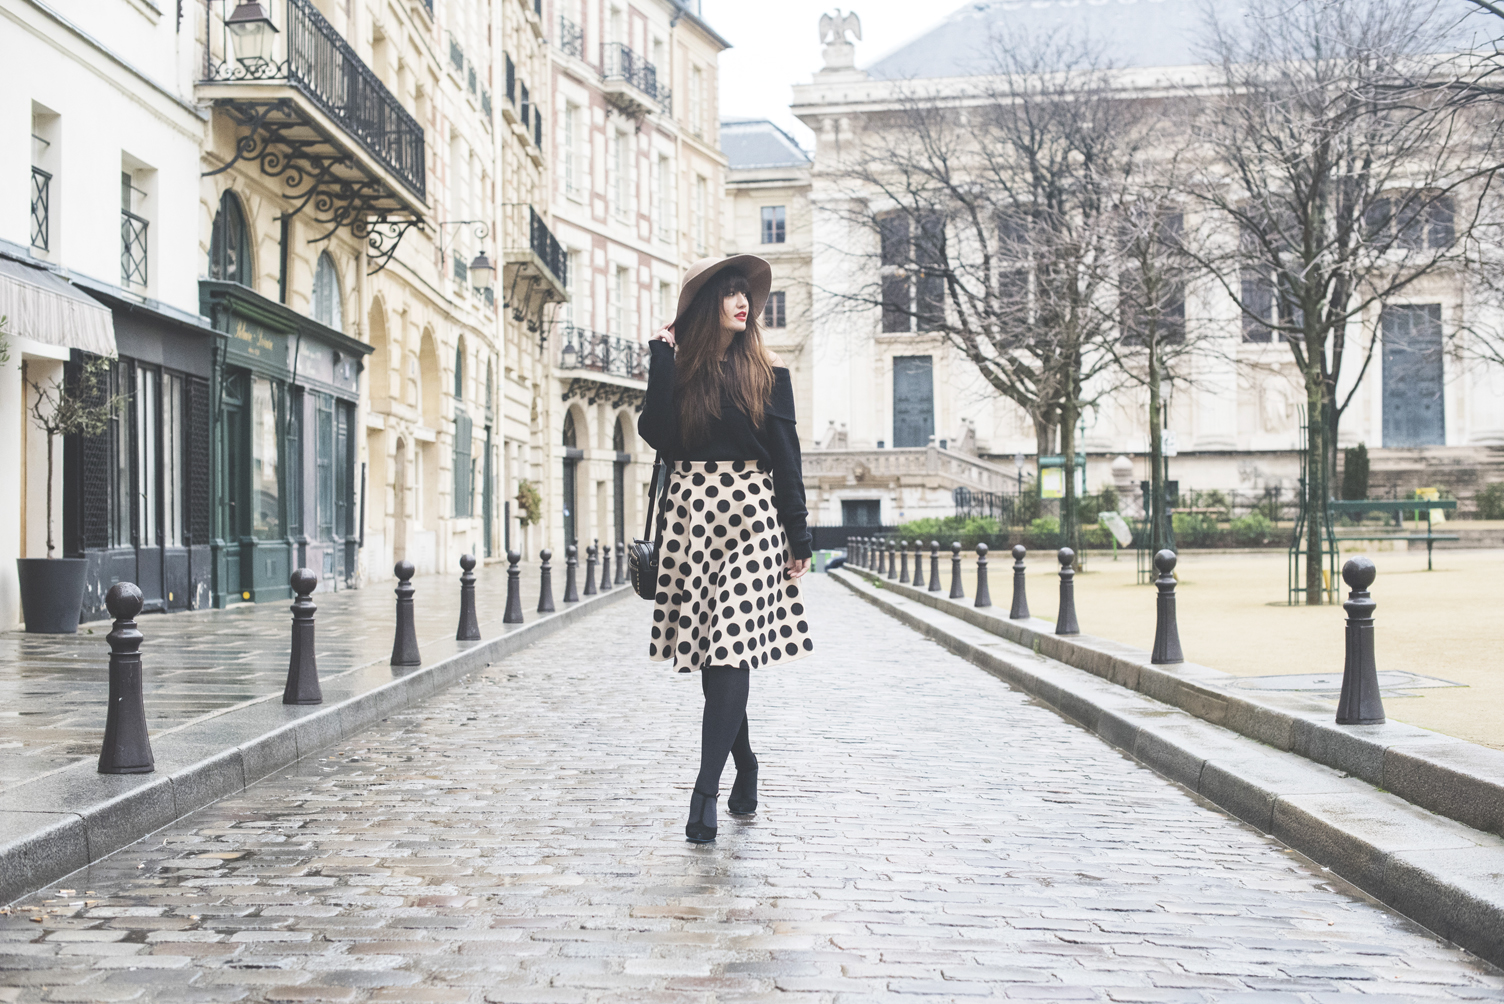 meetmeinparee, blogger, fashion, look, style, paris, chic style, look, parisian style